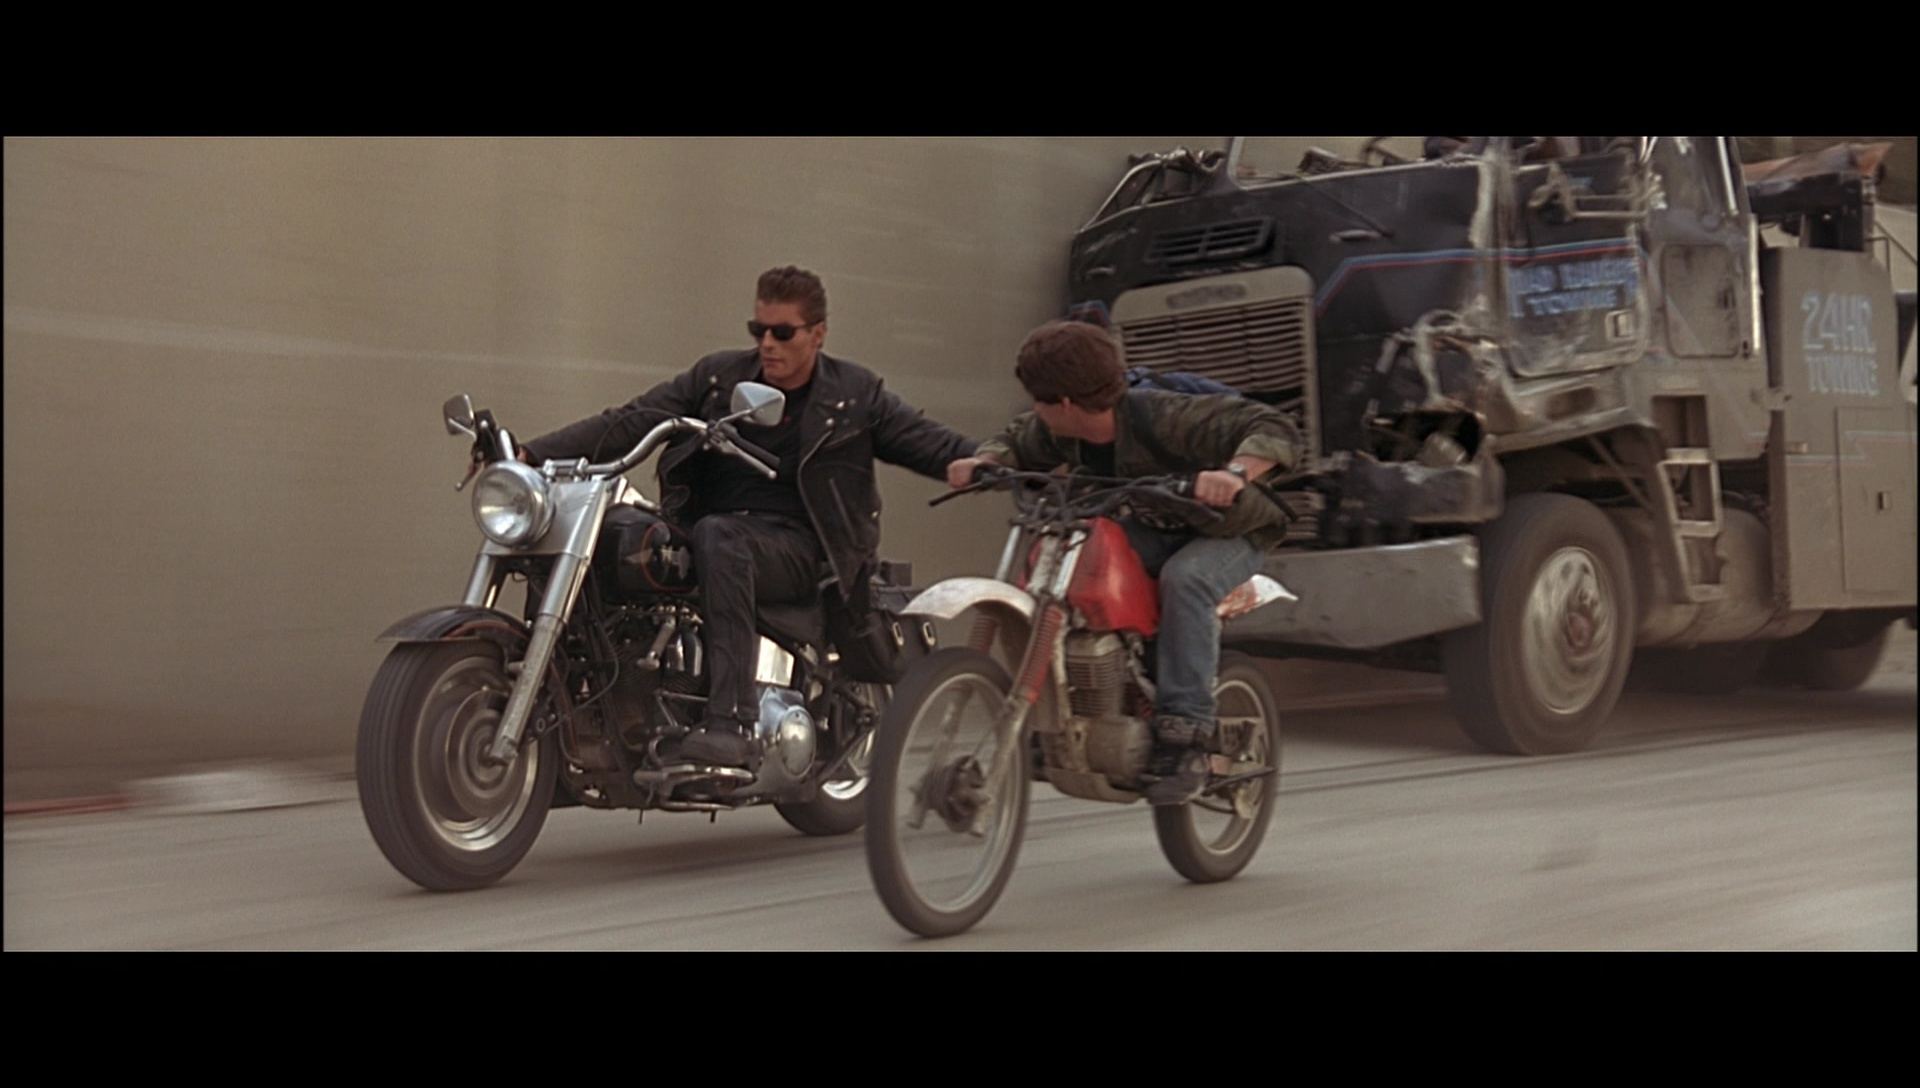 Honda Xr Motorcycle Driven By Edward Furlong John Connor In Terminator on Honda Xr 100